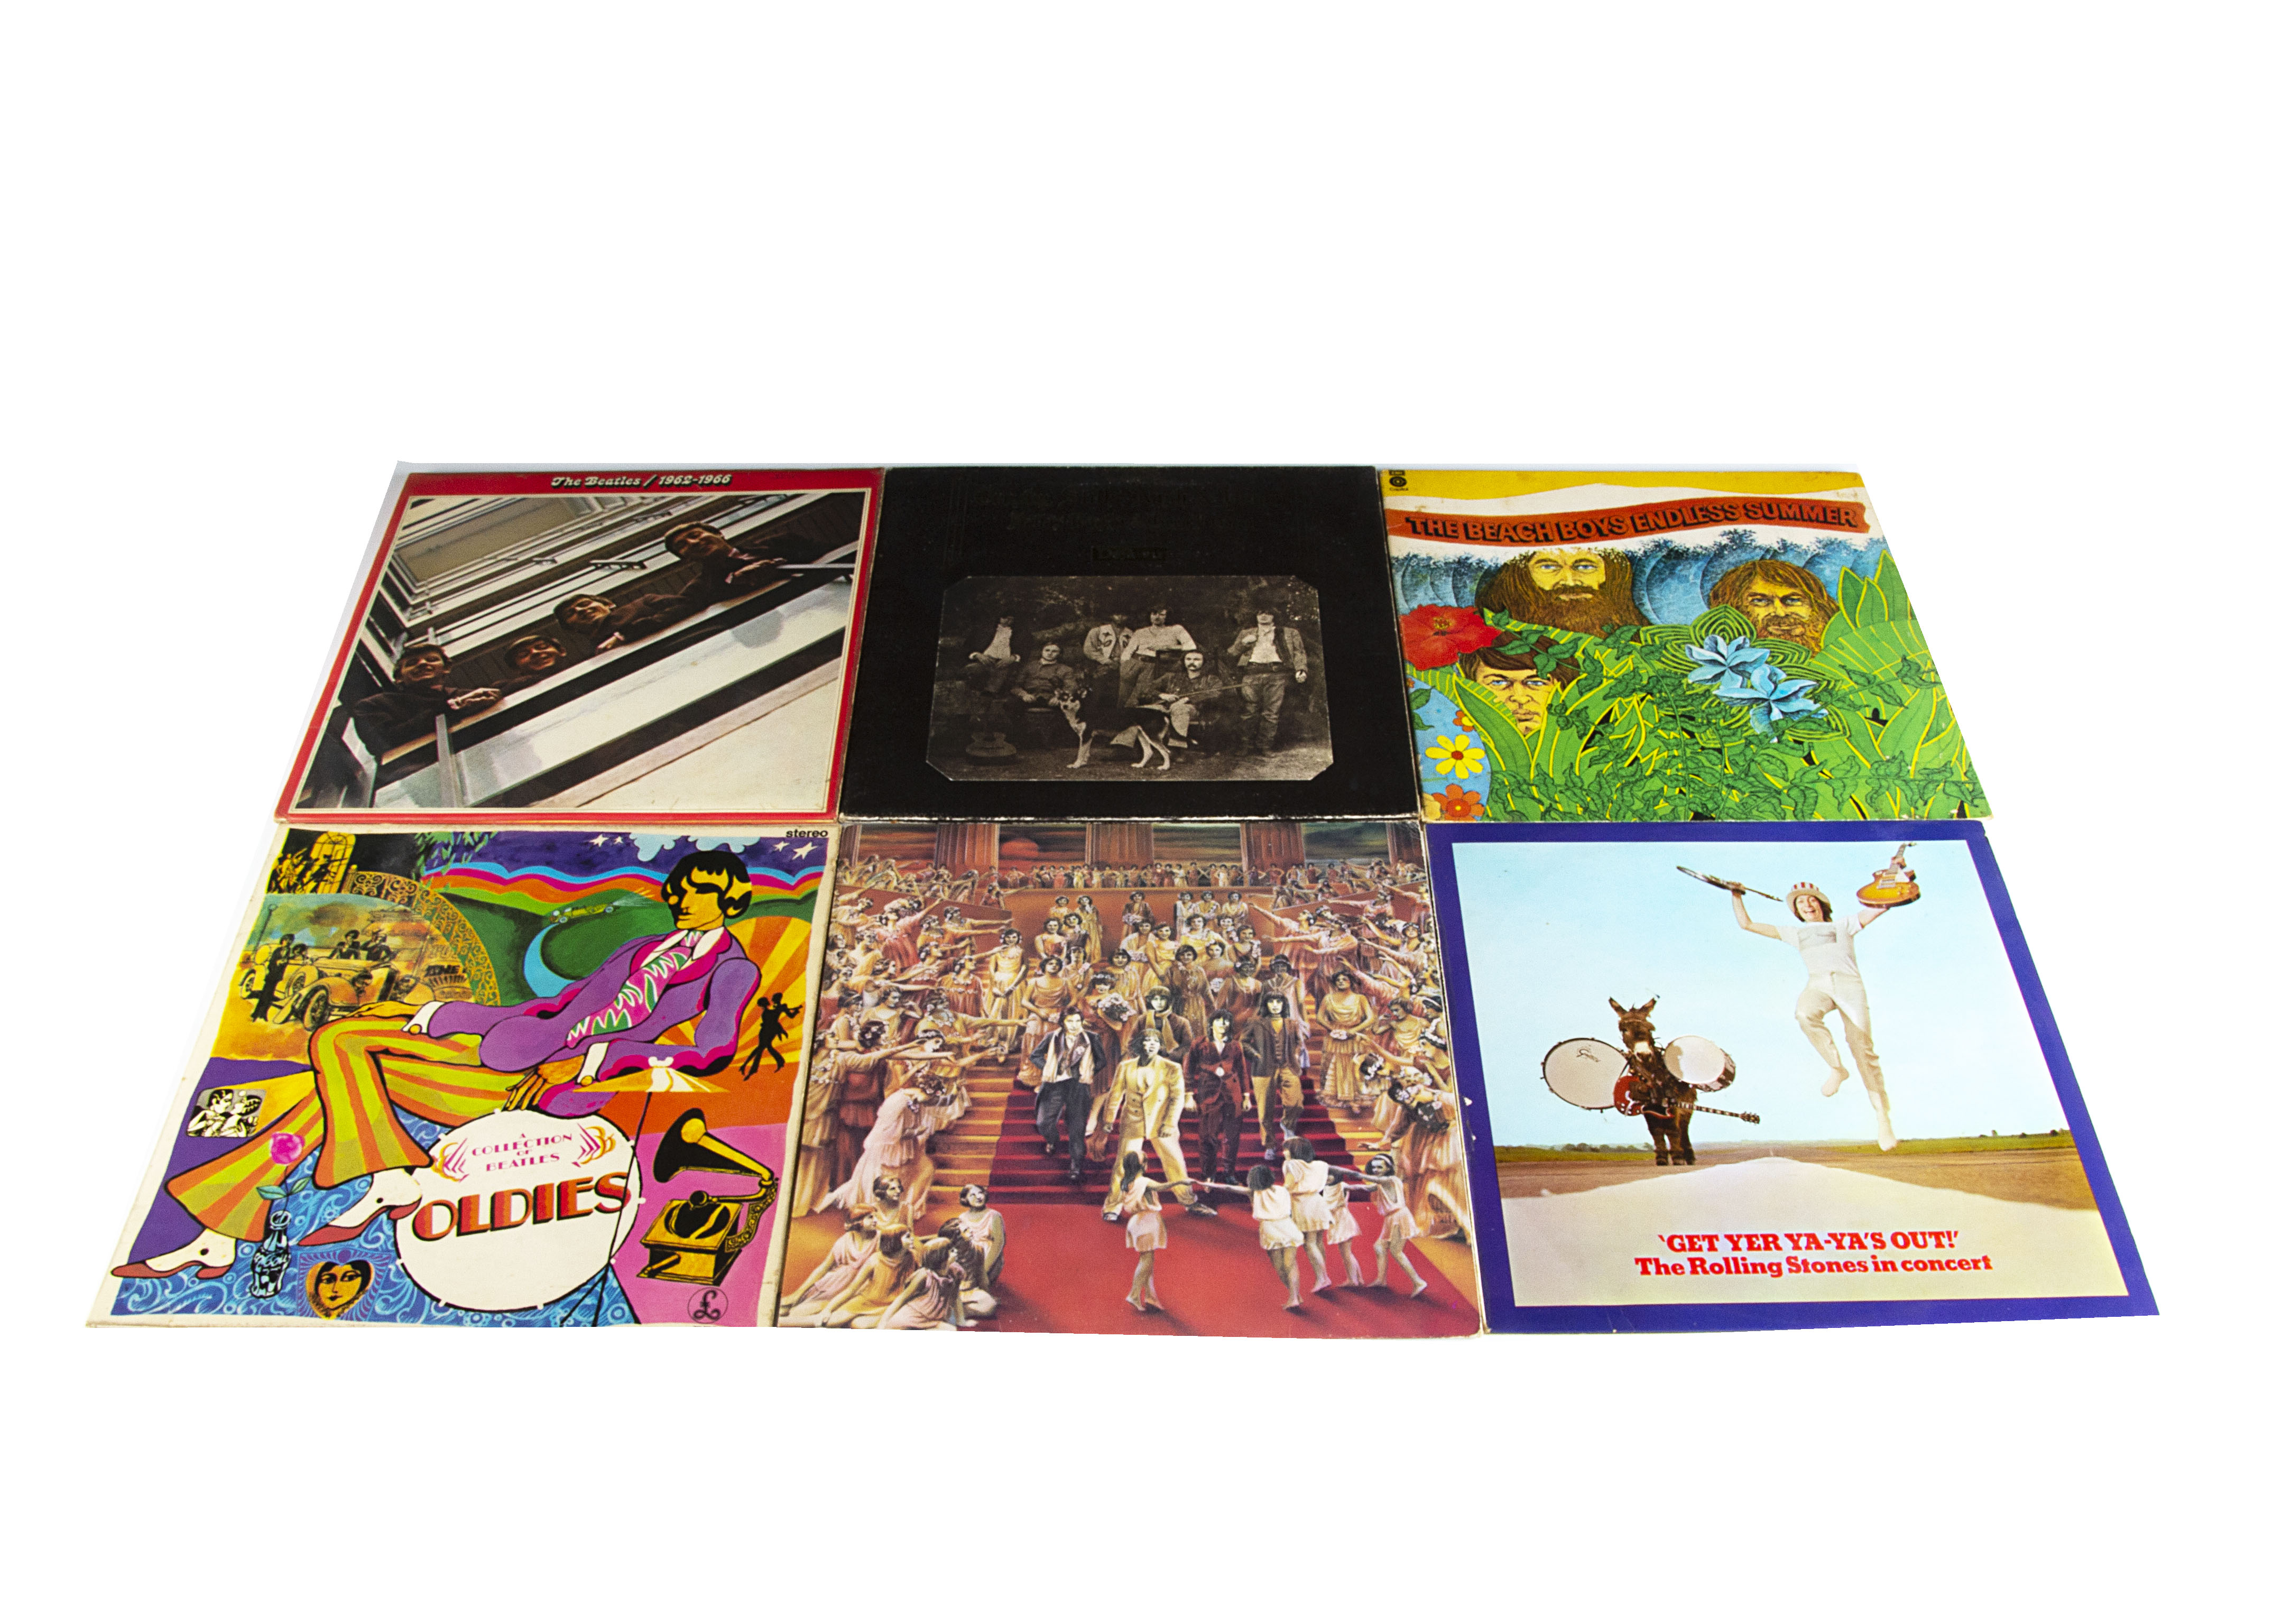 Sixties LPs, approximately forty albums of mainly Sixties artists including The Beatles / Solo,